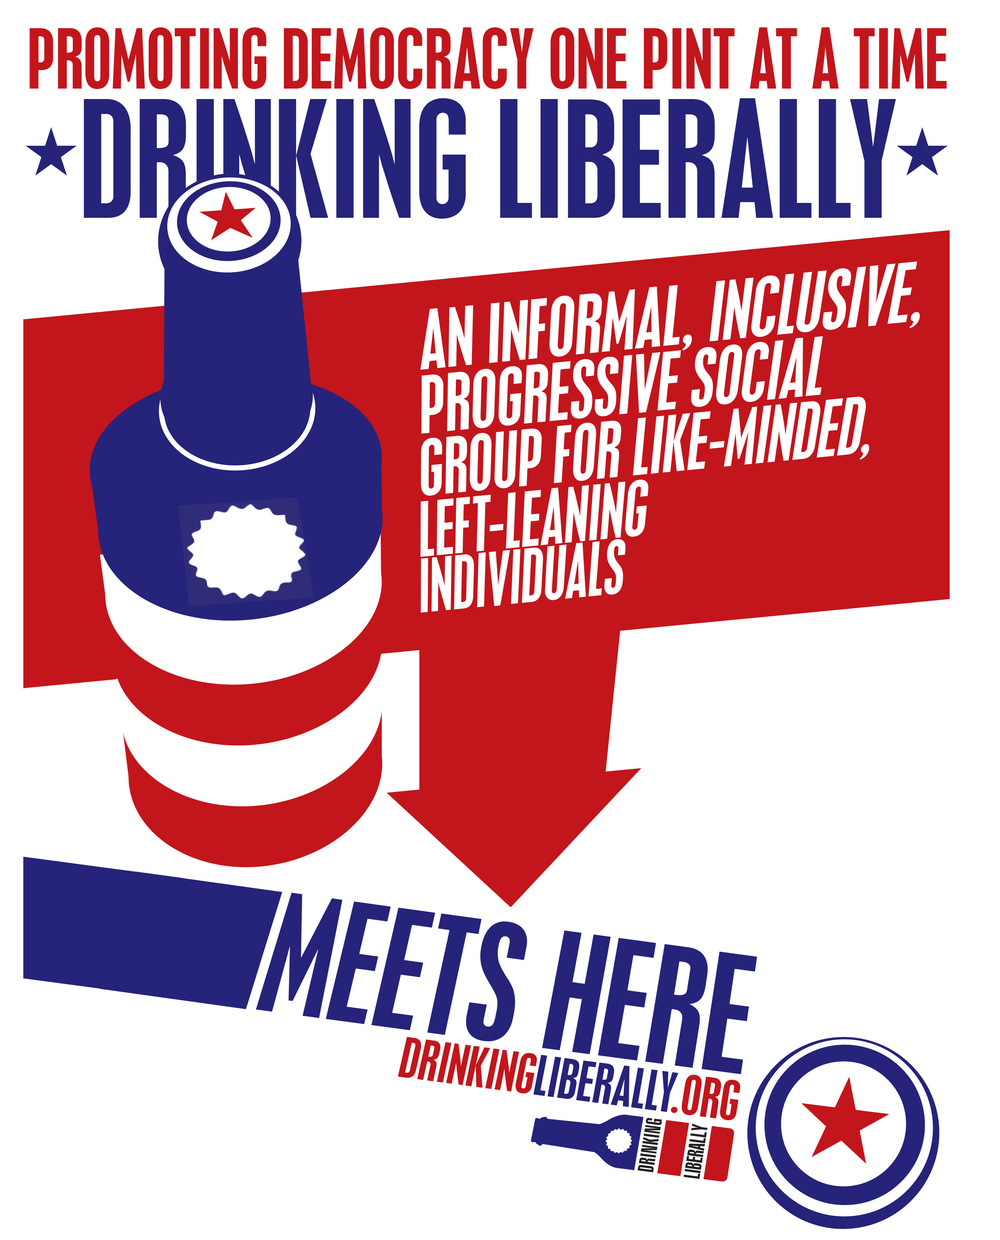 Drinking Liberally Bellingham chapter's next meeting is 7 p.m. Wednesday, March 2 at the Horseshoe Cafe (113 W. Holly Street).